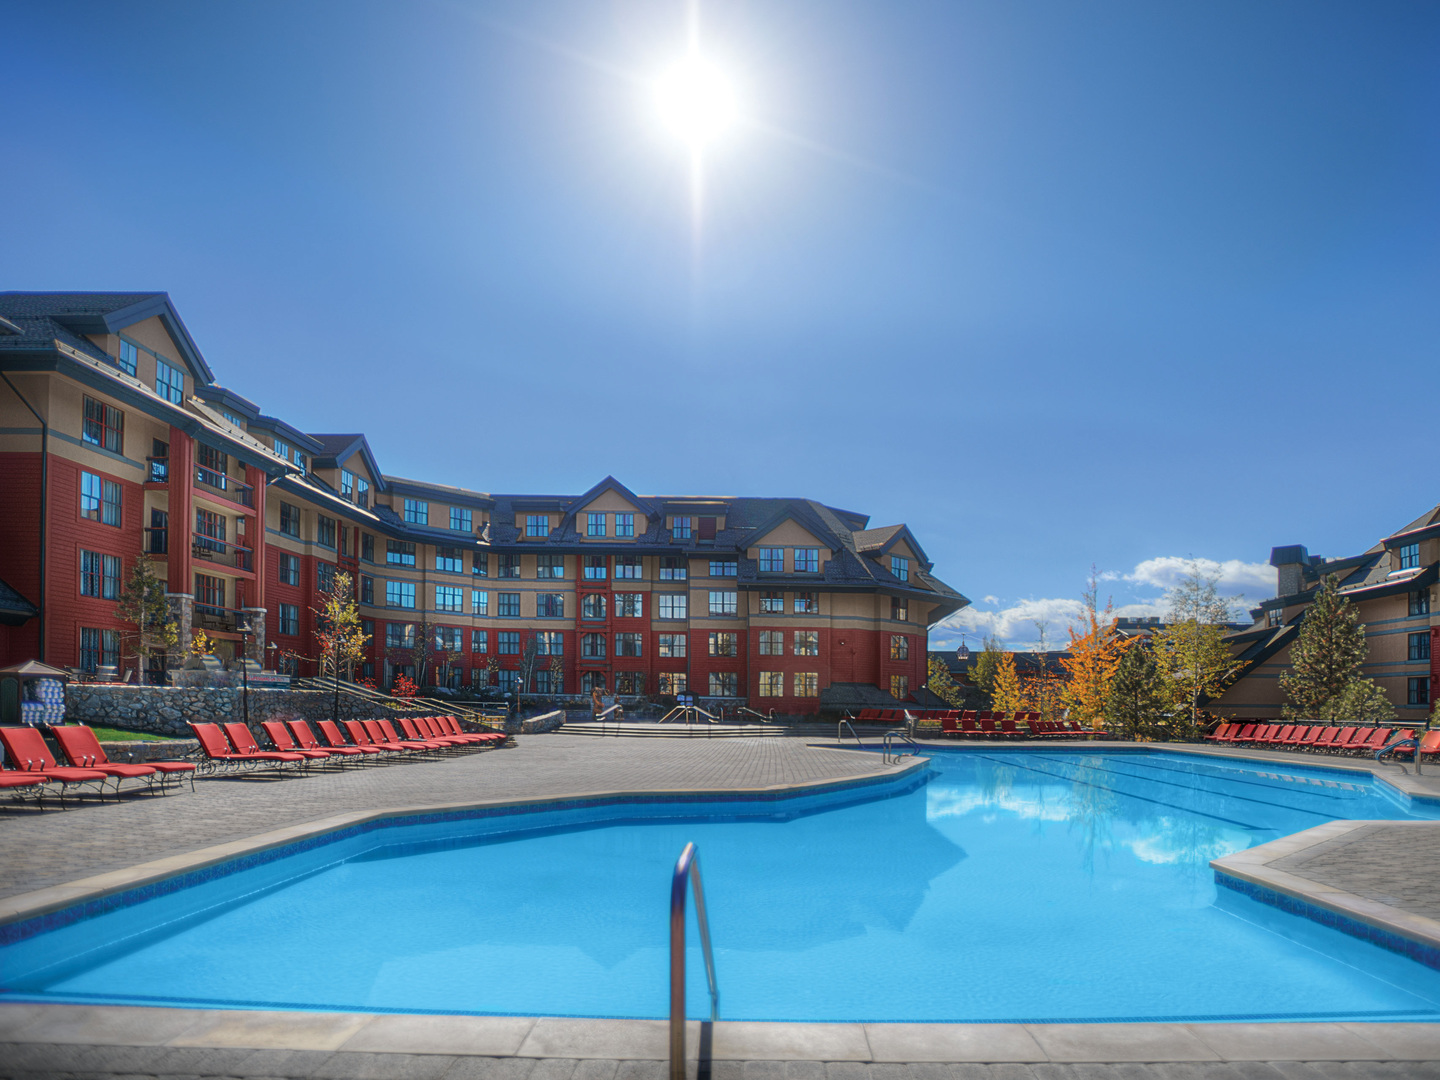 Marriott's Timber Lodge<span class='trademark'>®</span> Main Pool. Marriott's Timber Lodge<span class='trademark'>®</span> is located in South Lake Tahoe, California United States.